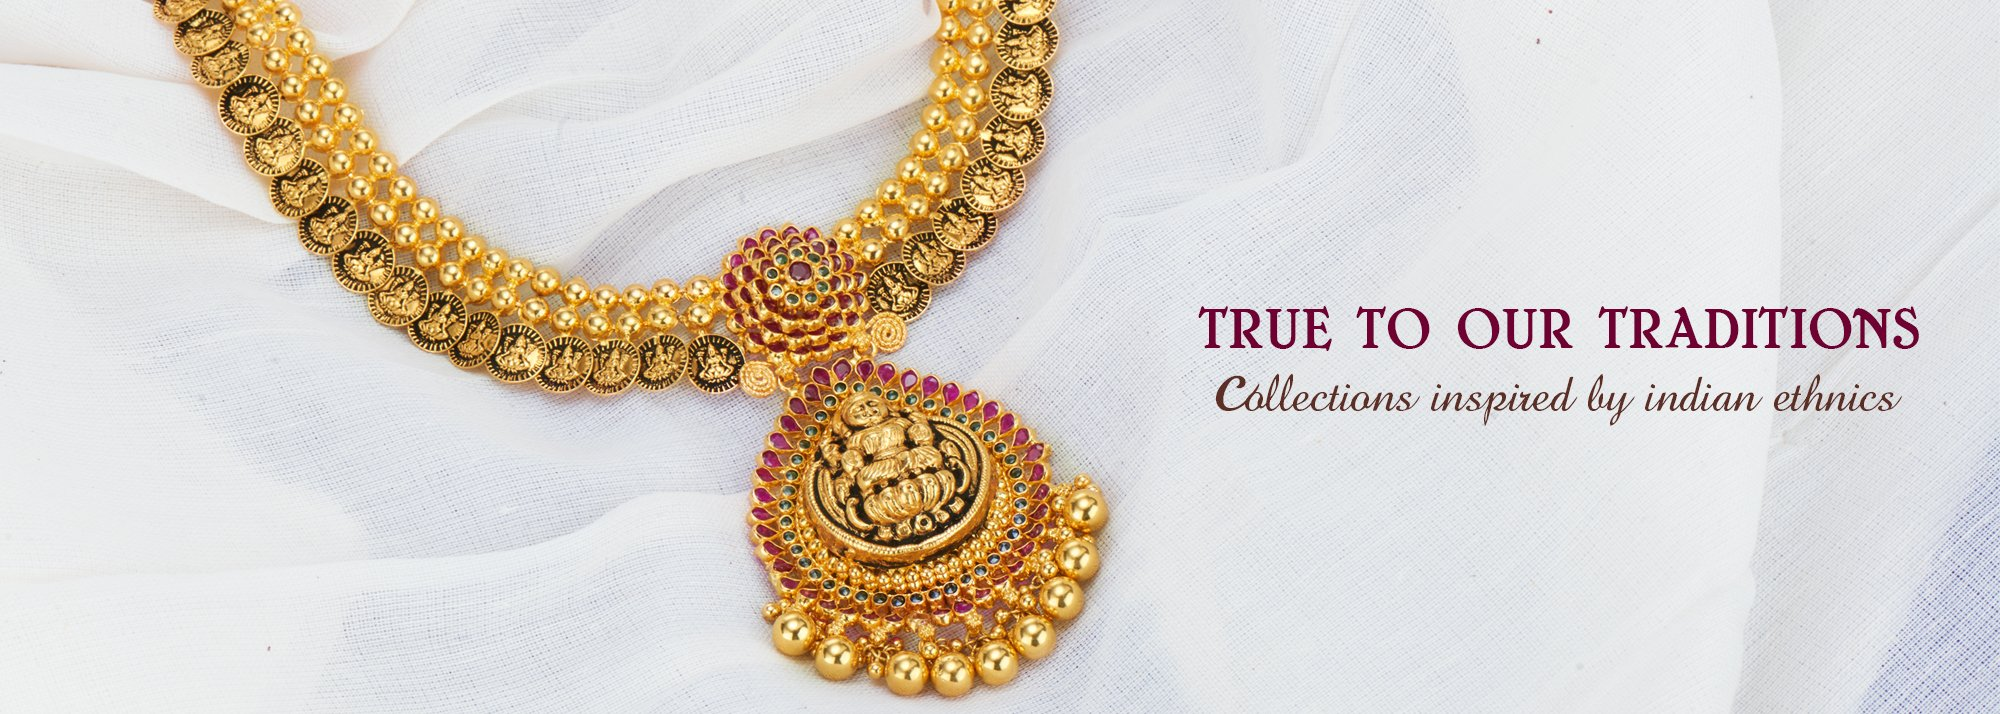 Online Jewellery Shopping Store Buy 22kt Gold Jewellery